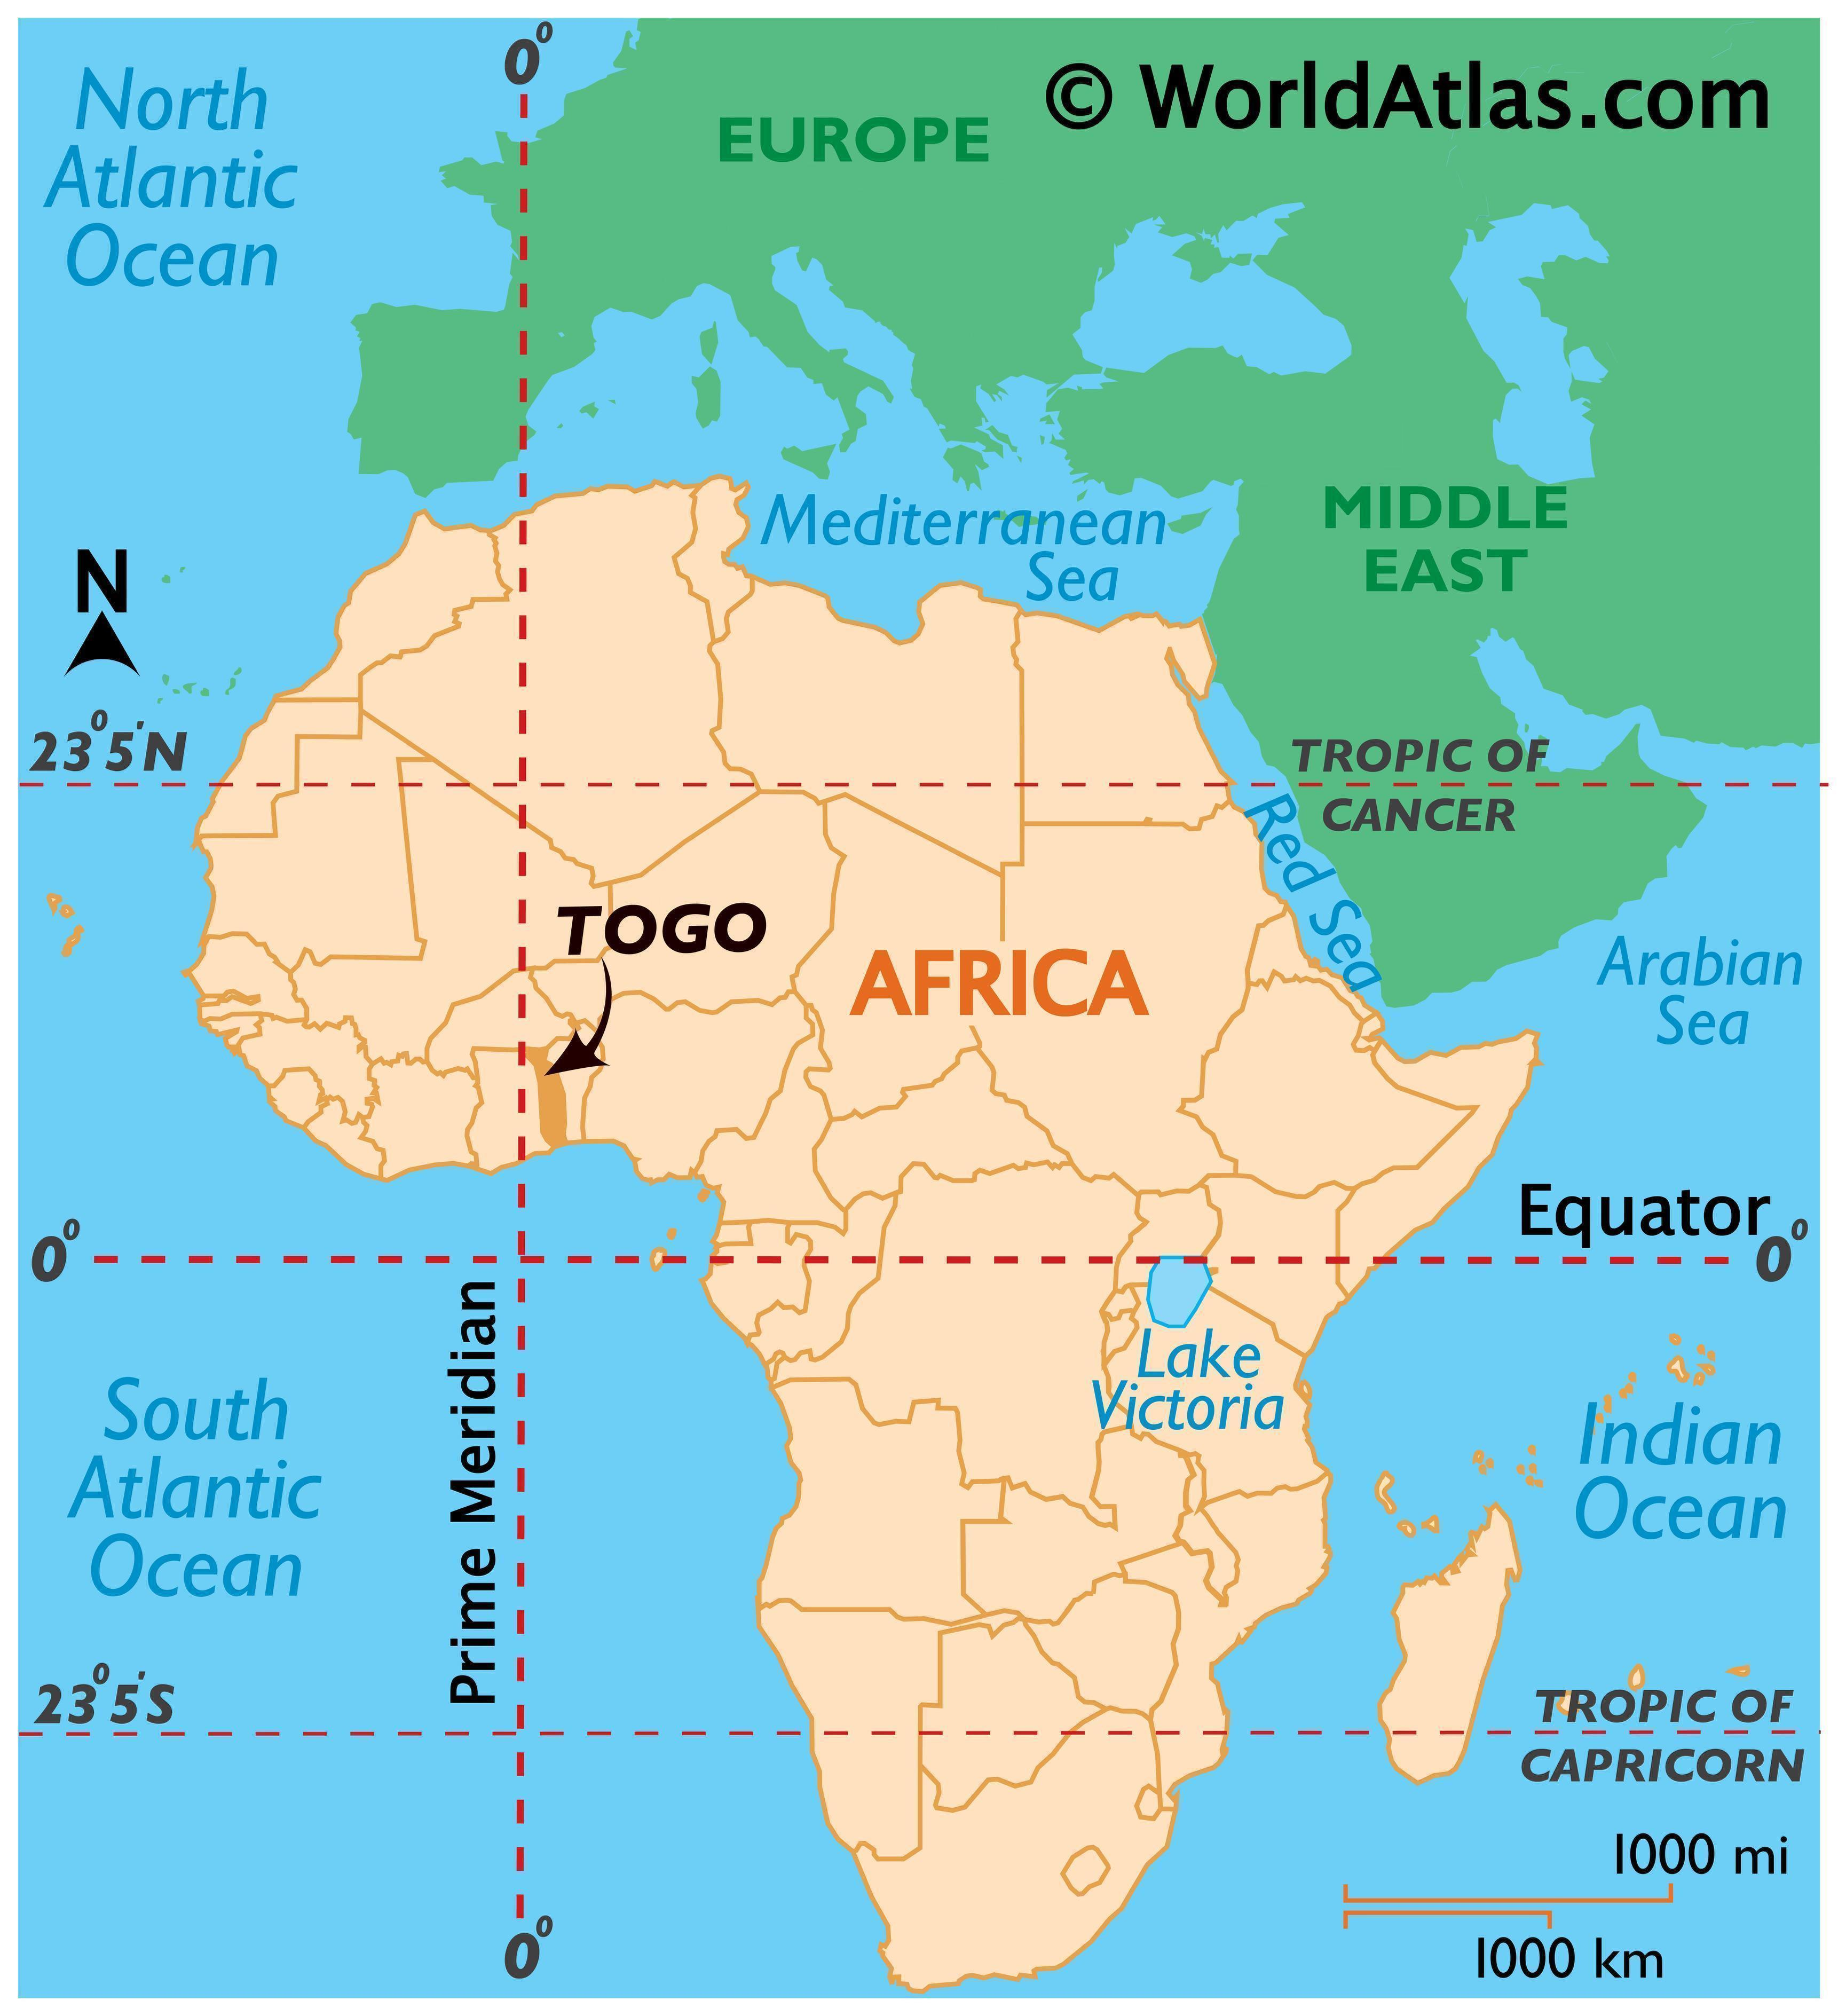 Where Is Togo?